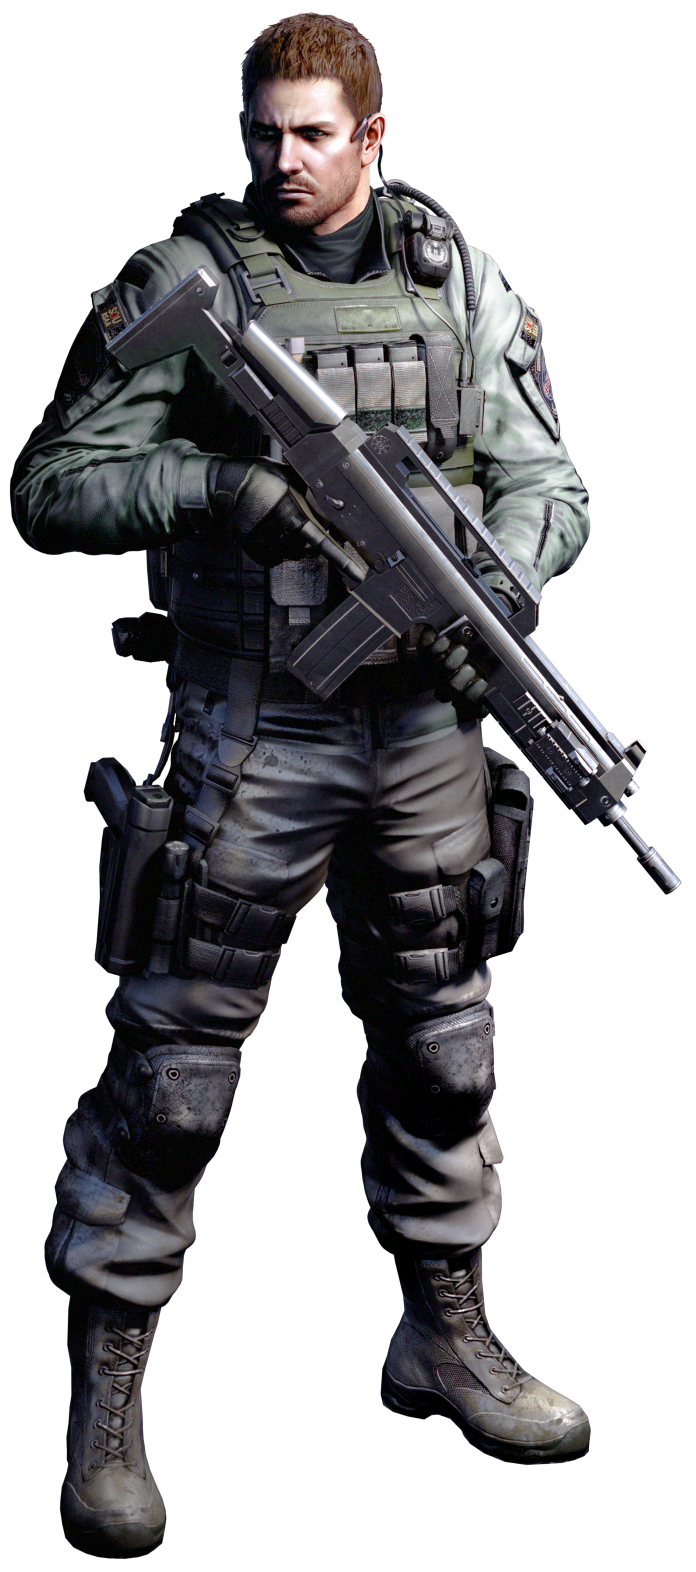 Vignette2 Wikia Nocookie Net Deathbattlefanon Images E Ea Chris Redfield Render Re6 By Ninaxleon D4ym61y Png Revision Resident Evil Resident Evil Game Resident